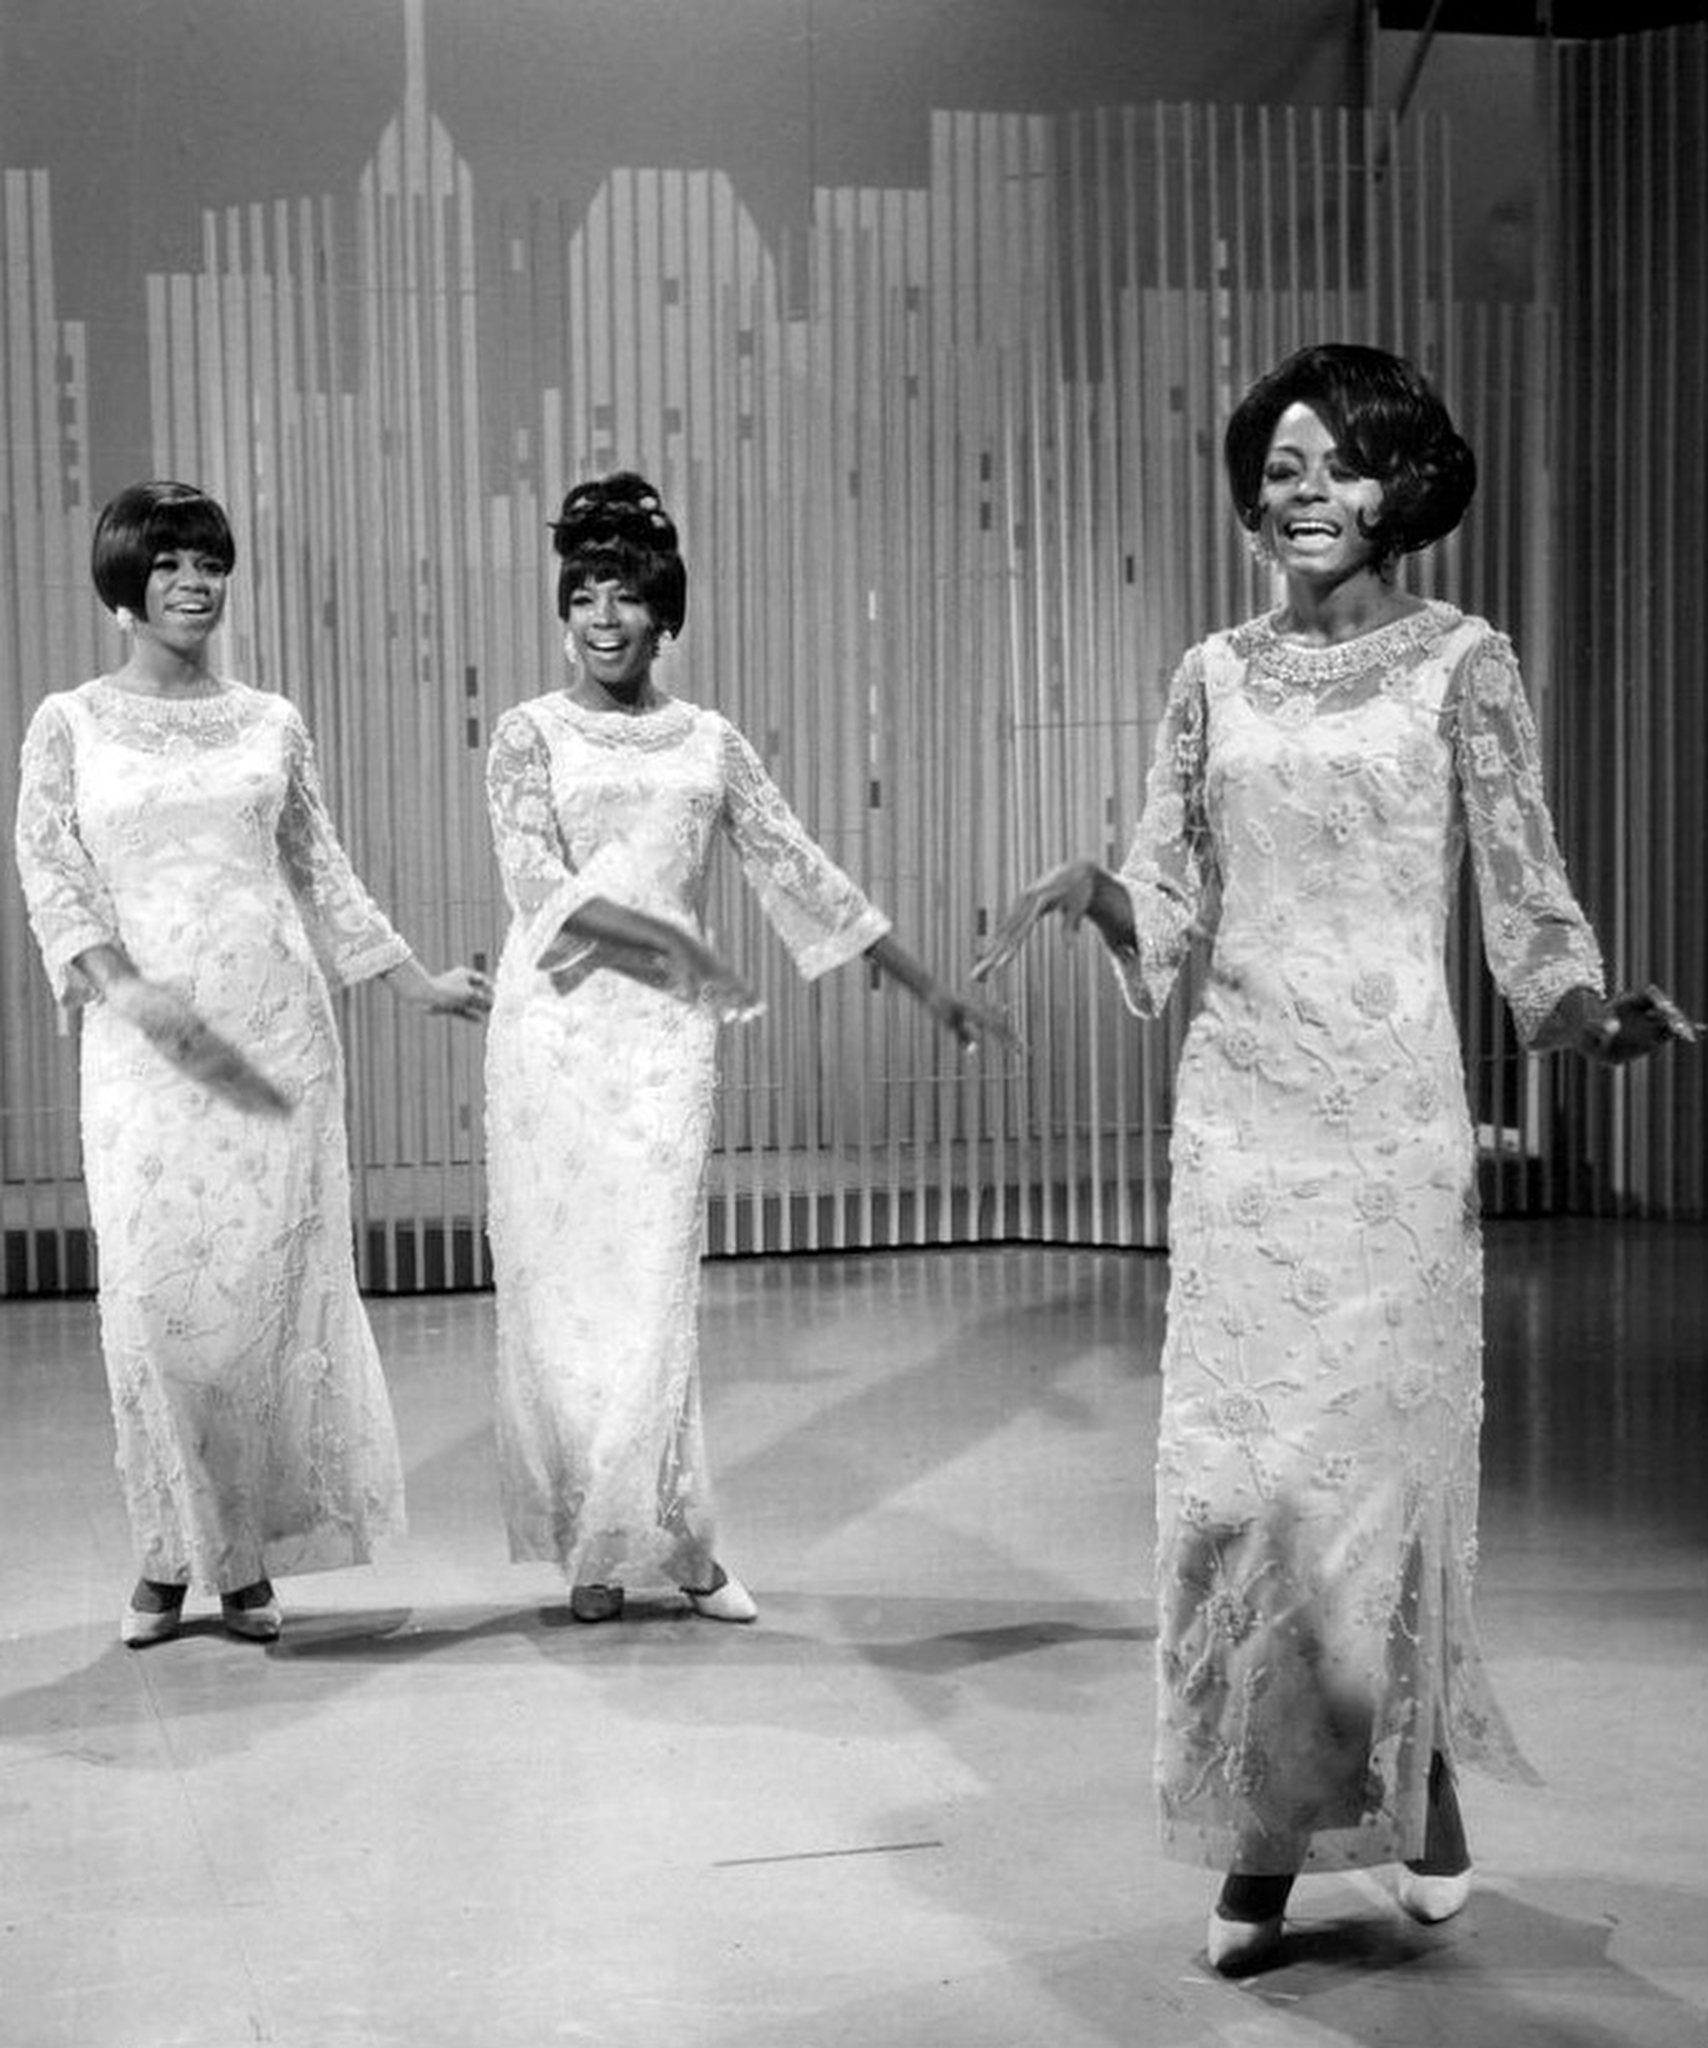 The fashion of the Sixties is celebrated with the fashion of the Twenties.